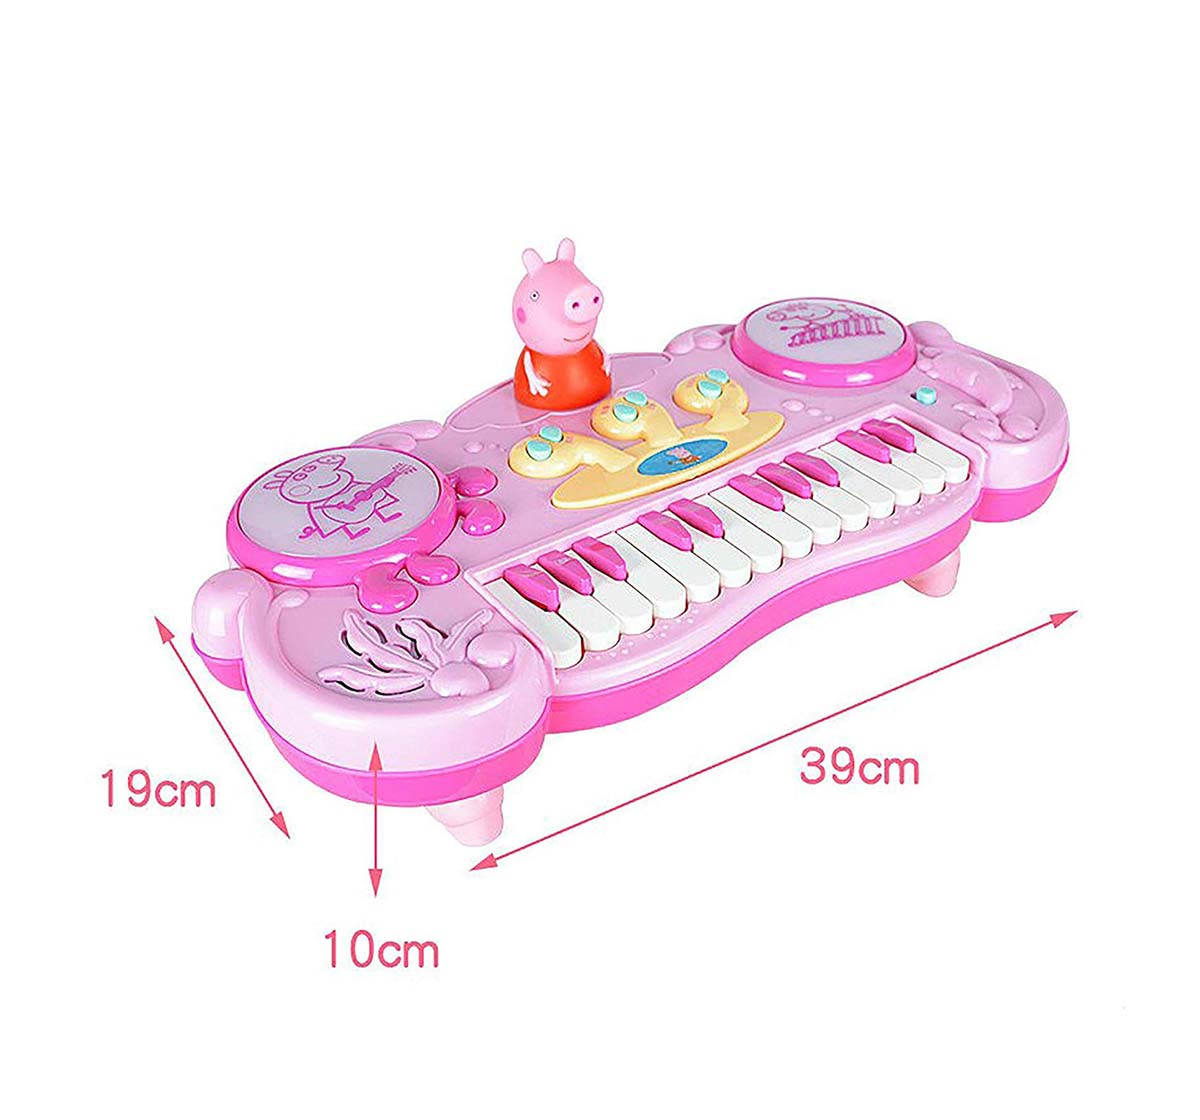 Peppa Pig | Peppa Pig Pink Piano Musical Toys for Kids age 24M+